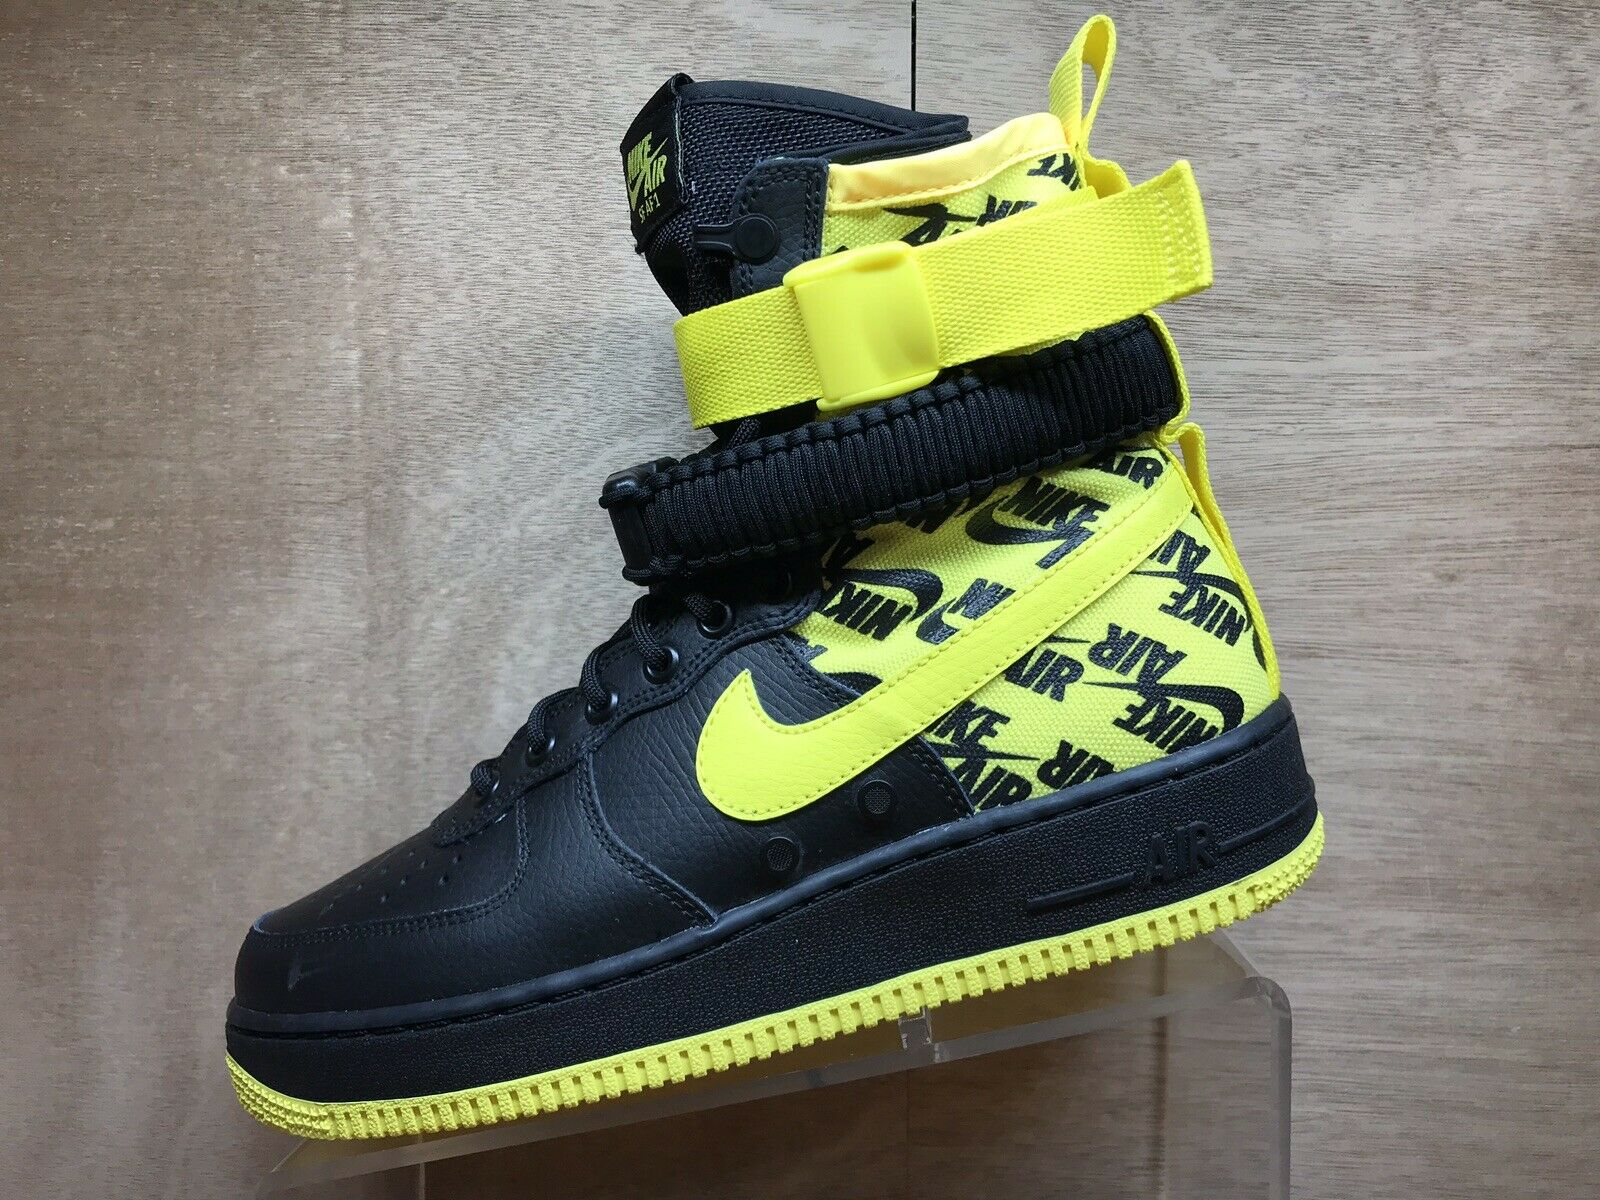 Nike SF Air Force 1 Black   Dynamic Yellow Size 8.5 AR1955-001 Winter shoes Boot